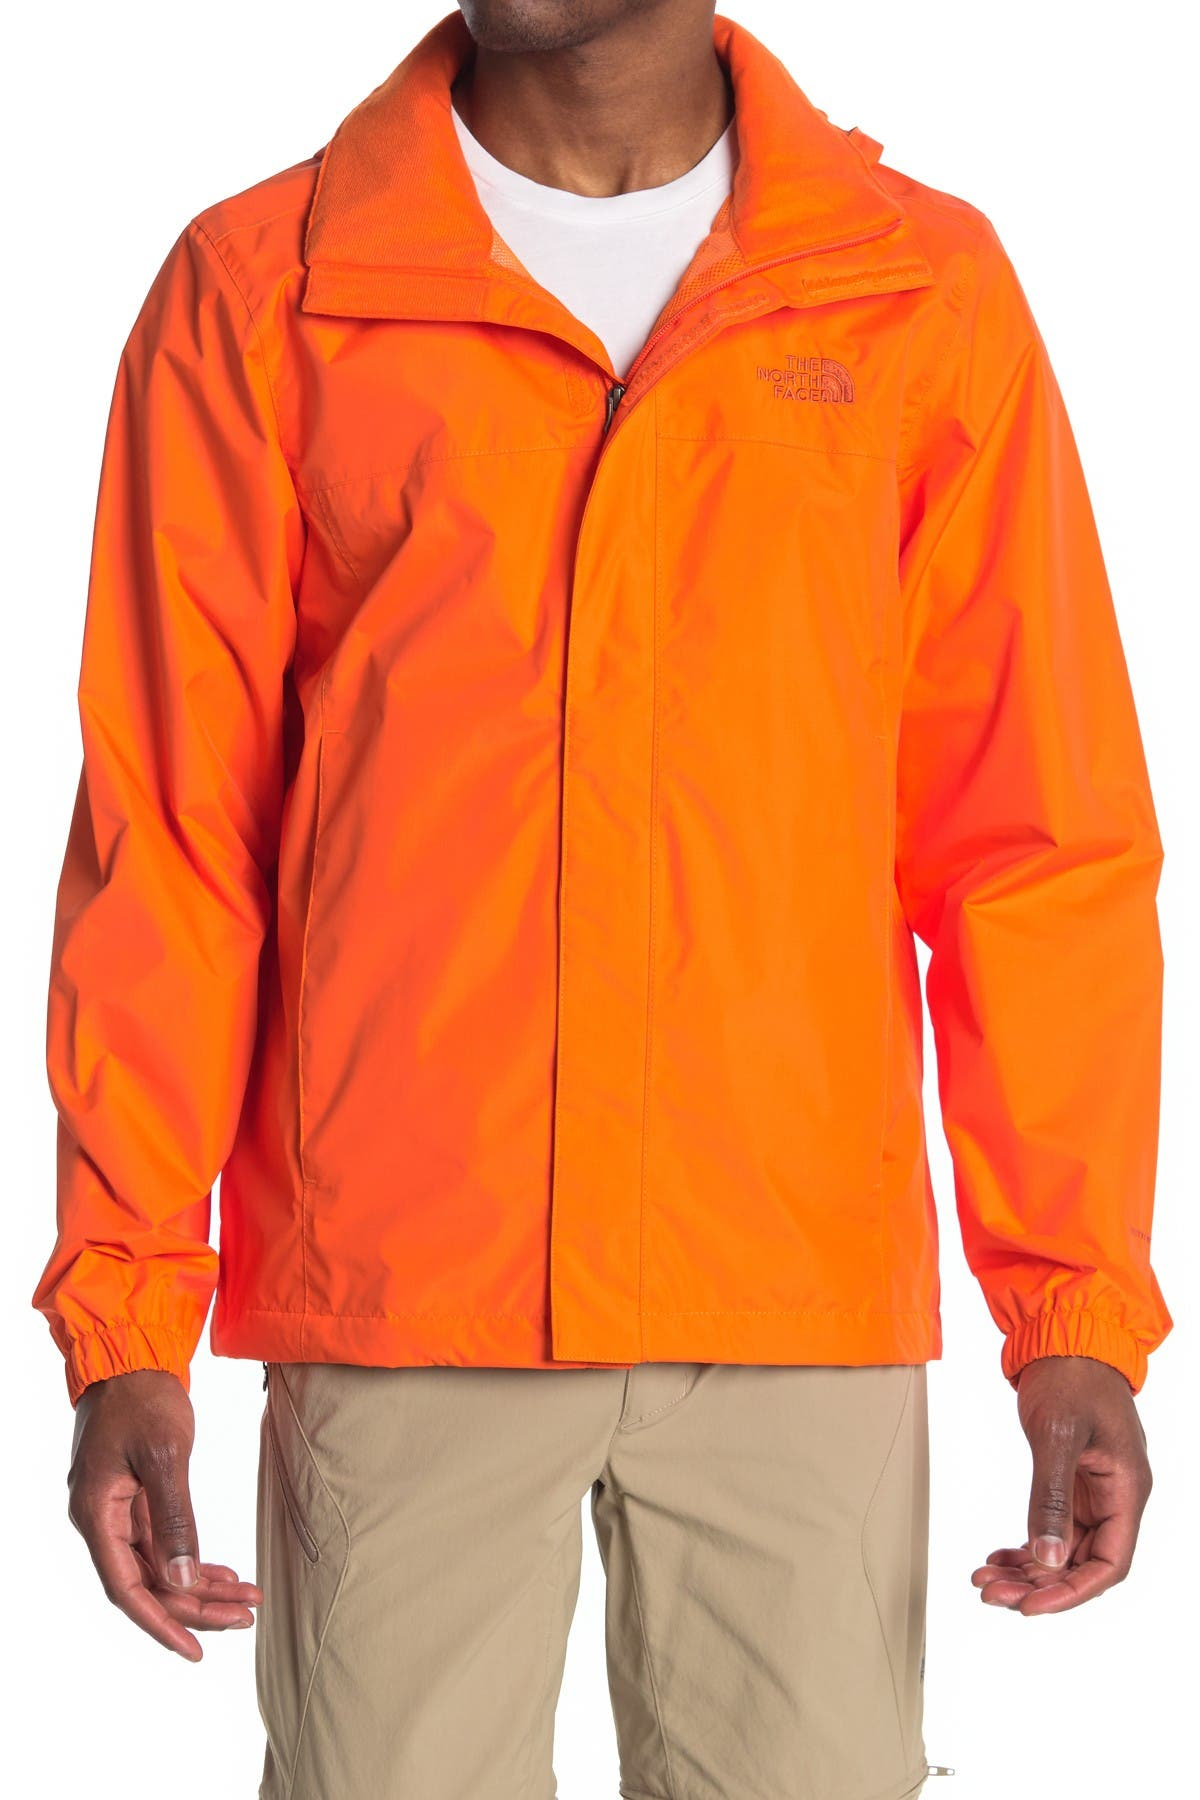 Image of The North Face Resolve 2 Hooded Waterproof Jacket